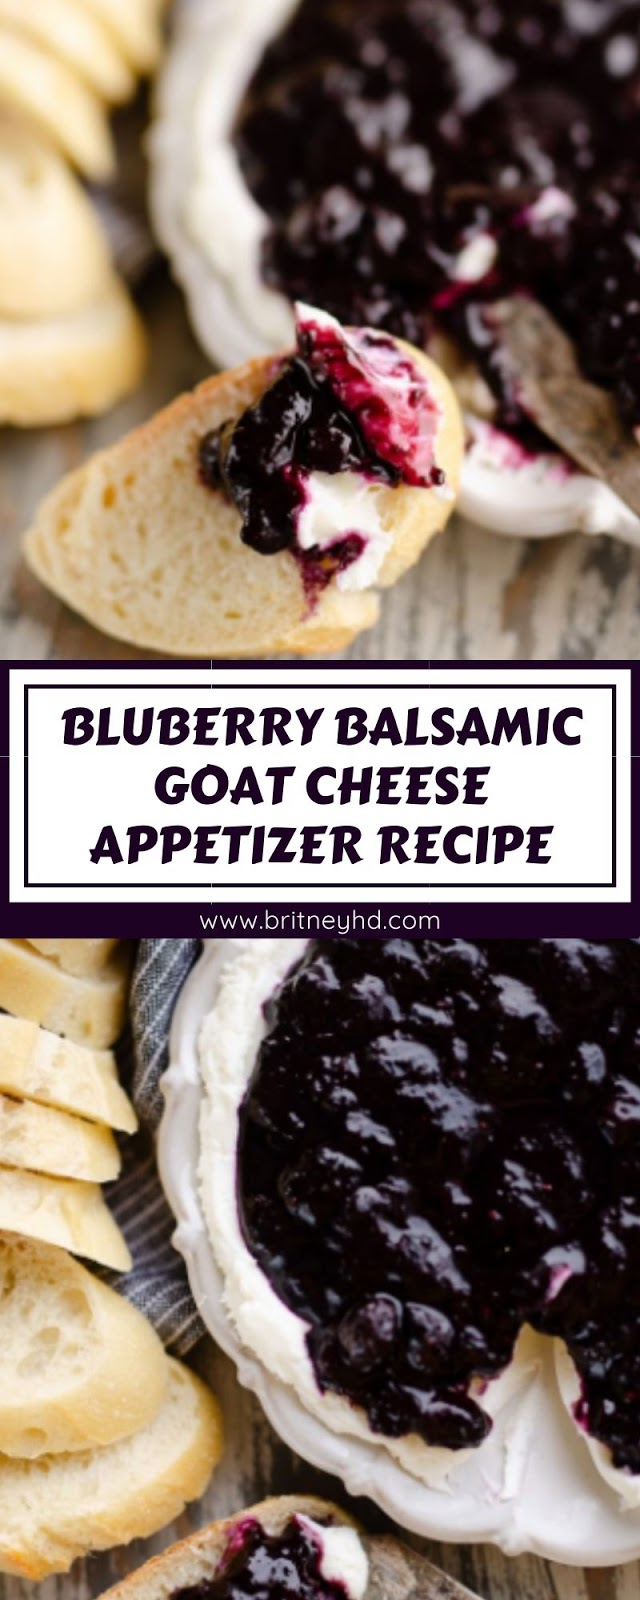 BLUBERRY BALSAMIC GOAT CHEESE APPETIZER RECIPE